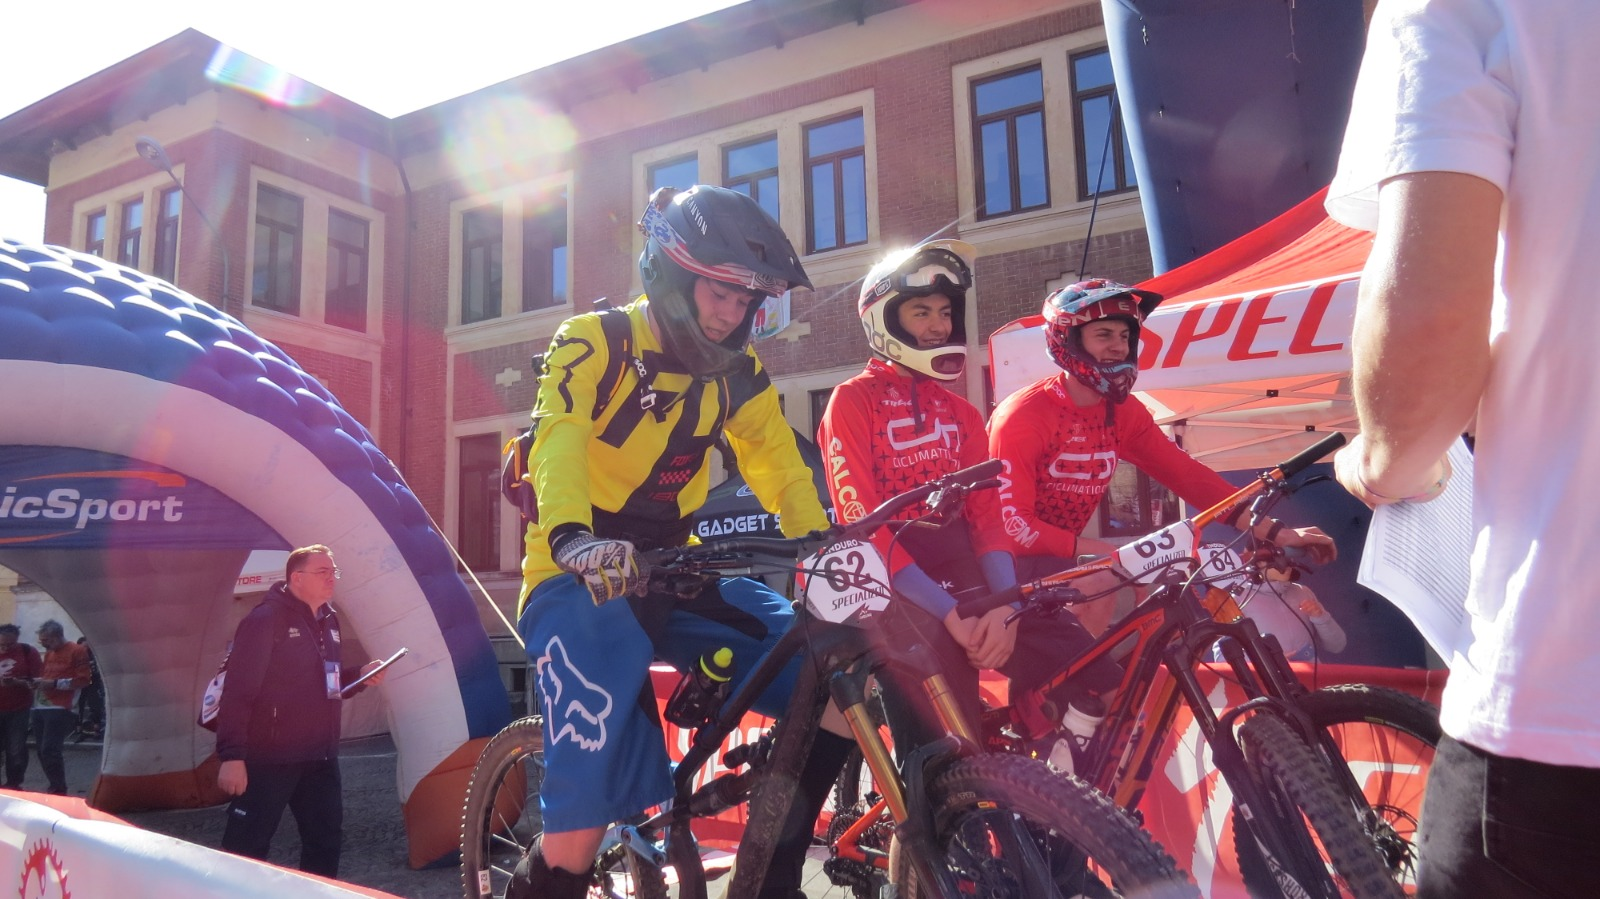 ASD Velo Club Courmayeur Mont Blanc, affiliato Federazione Ciclistica Italiana, Mountain Bike, MTB, Courmayeur, Aosta